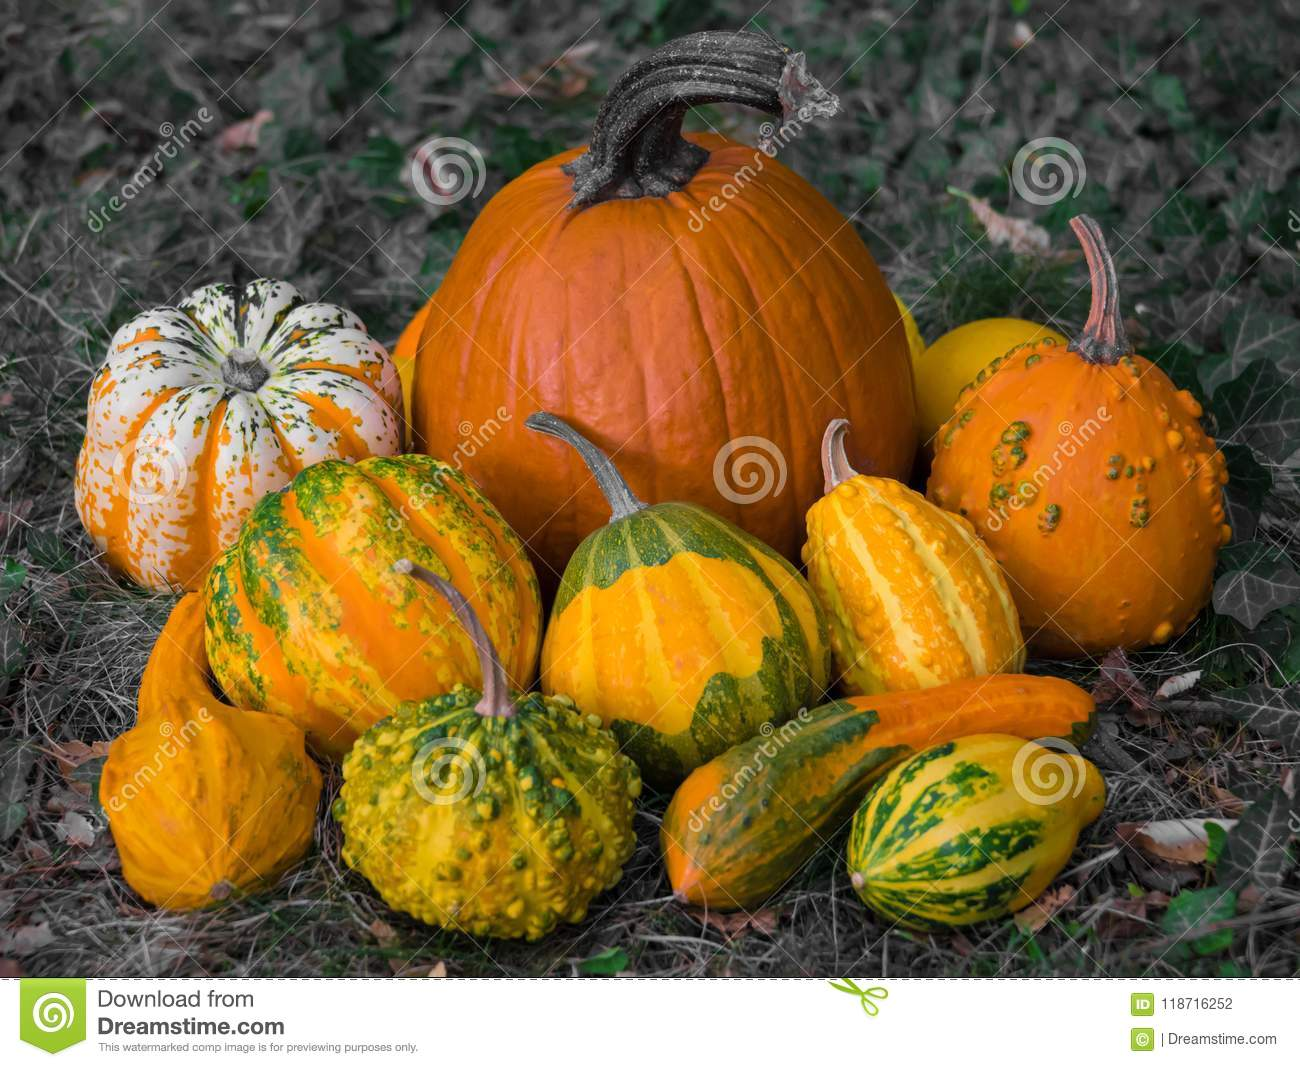 Winter squash with beautiful patterns colored in orange, yellow and green